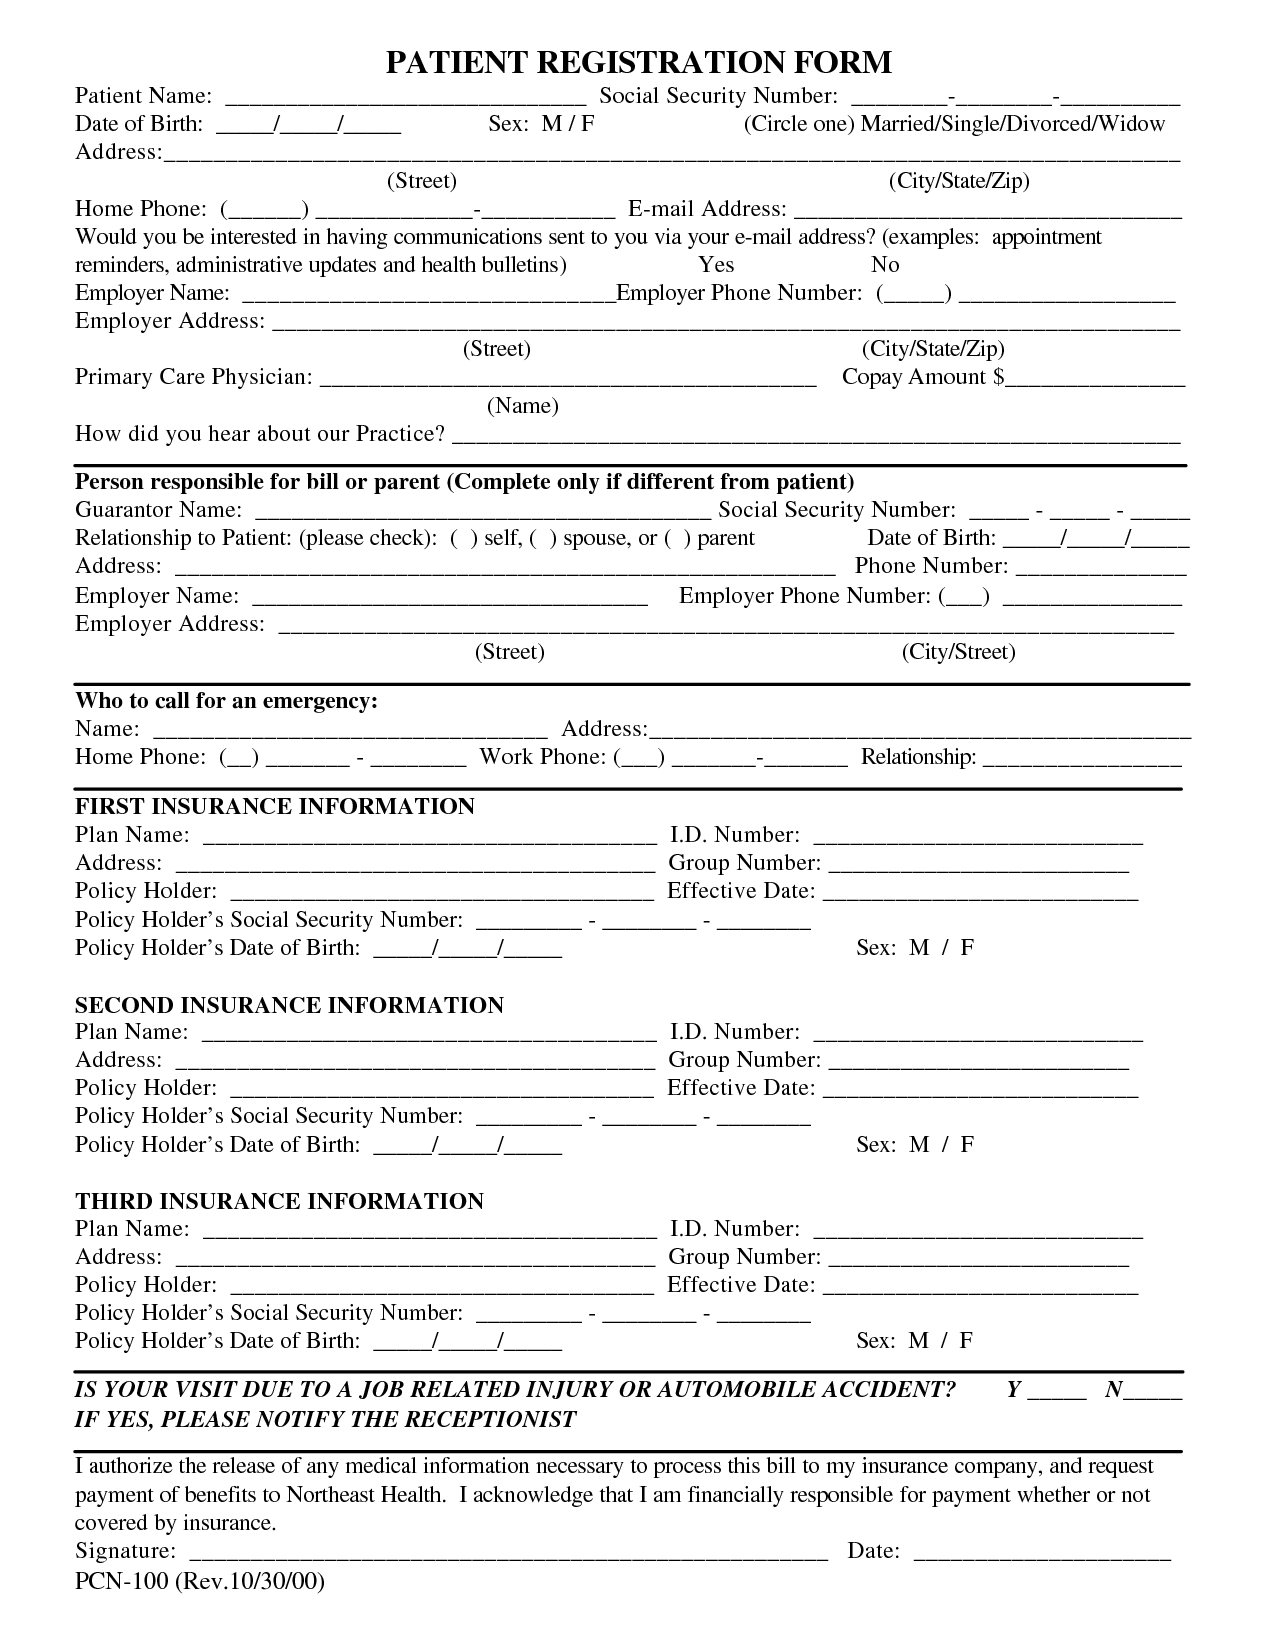 Free Patient Registration Form Template Blank Medical